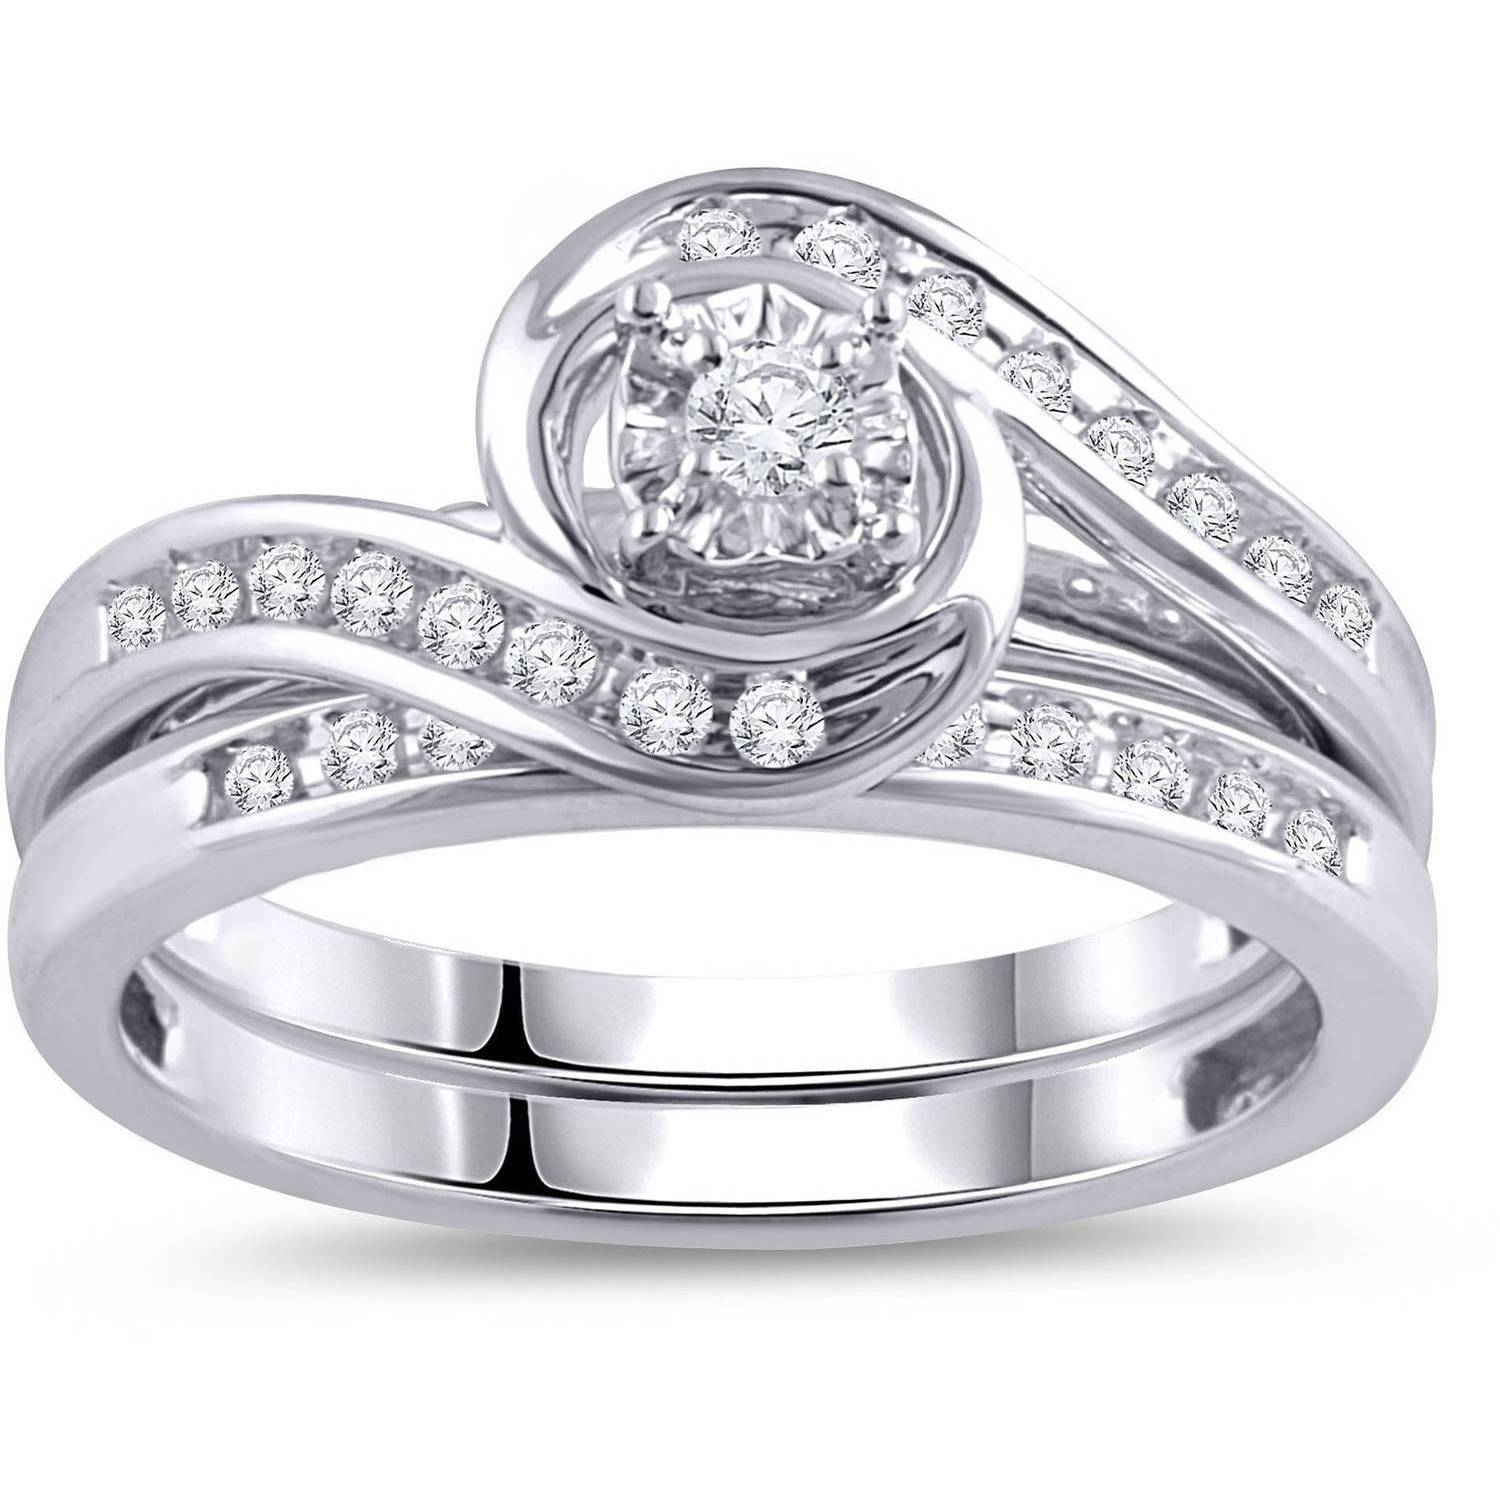 Ring Wedding Ring Sets Him And Her Cheap Sterling Silver Wedding In Silver Wedding Bands For Her (View 9 of 15)